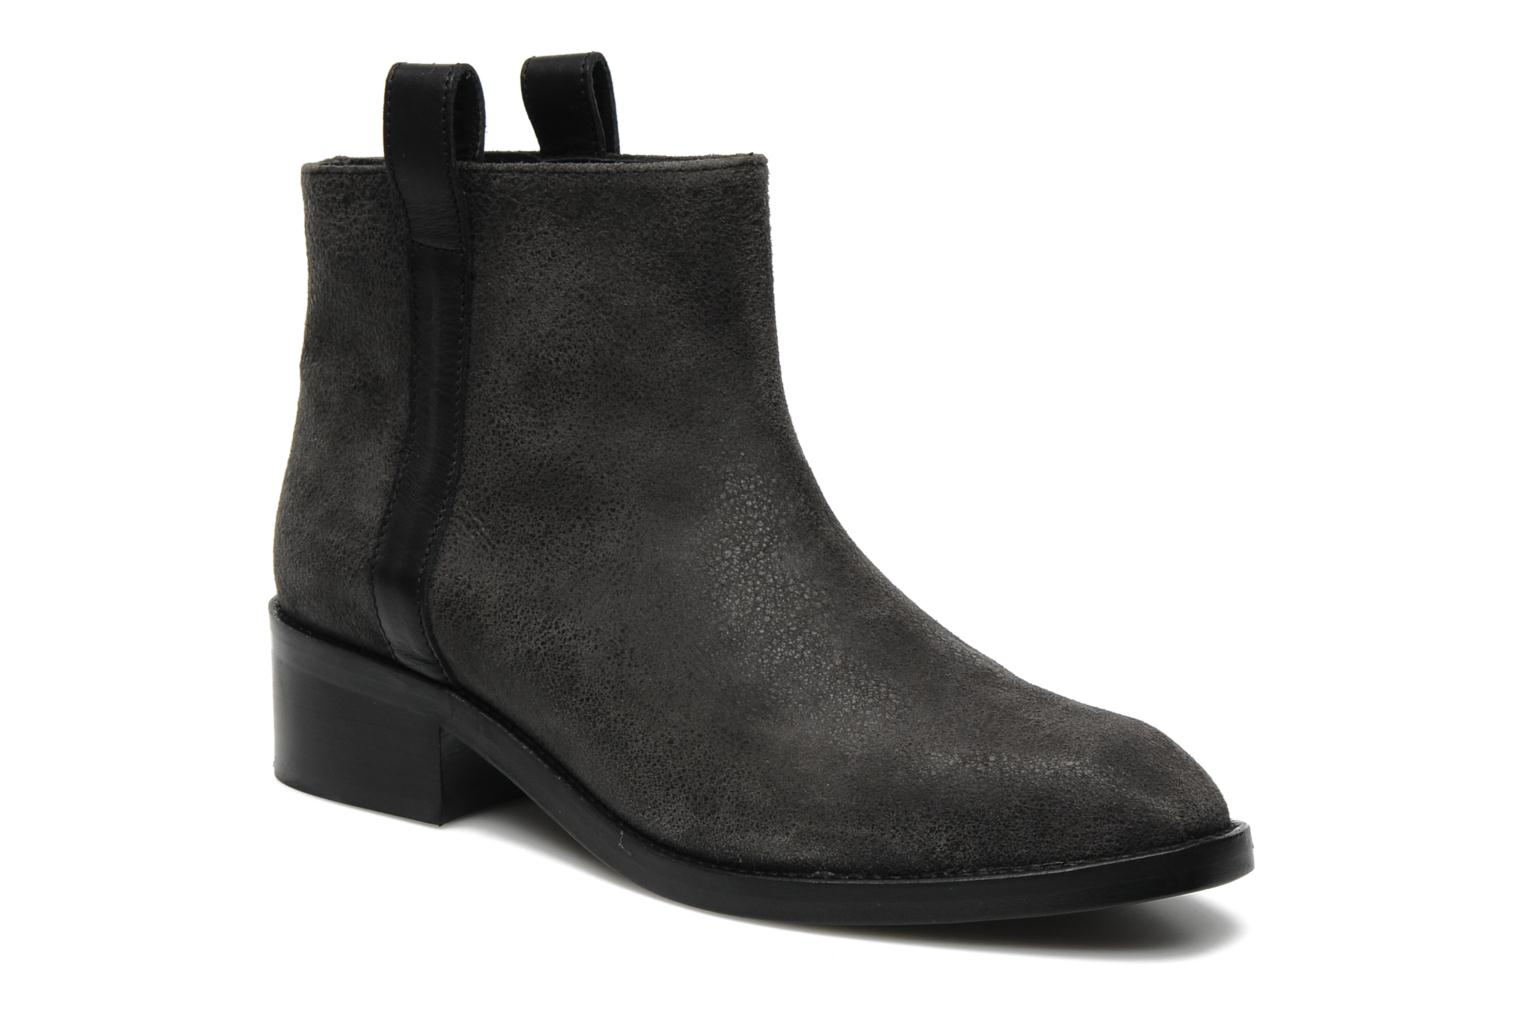 Marques Chaussure femme Surface To Air femme Kim Pull Tab Boots Black